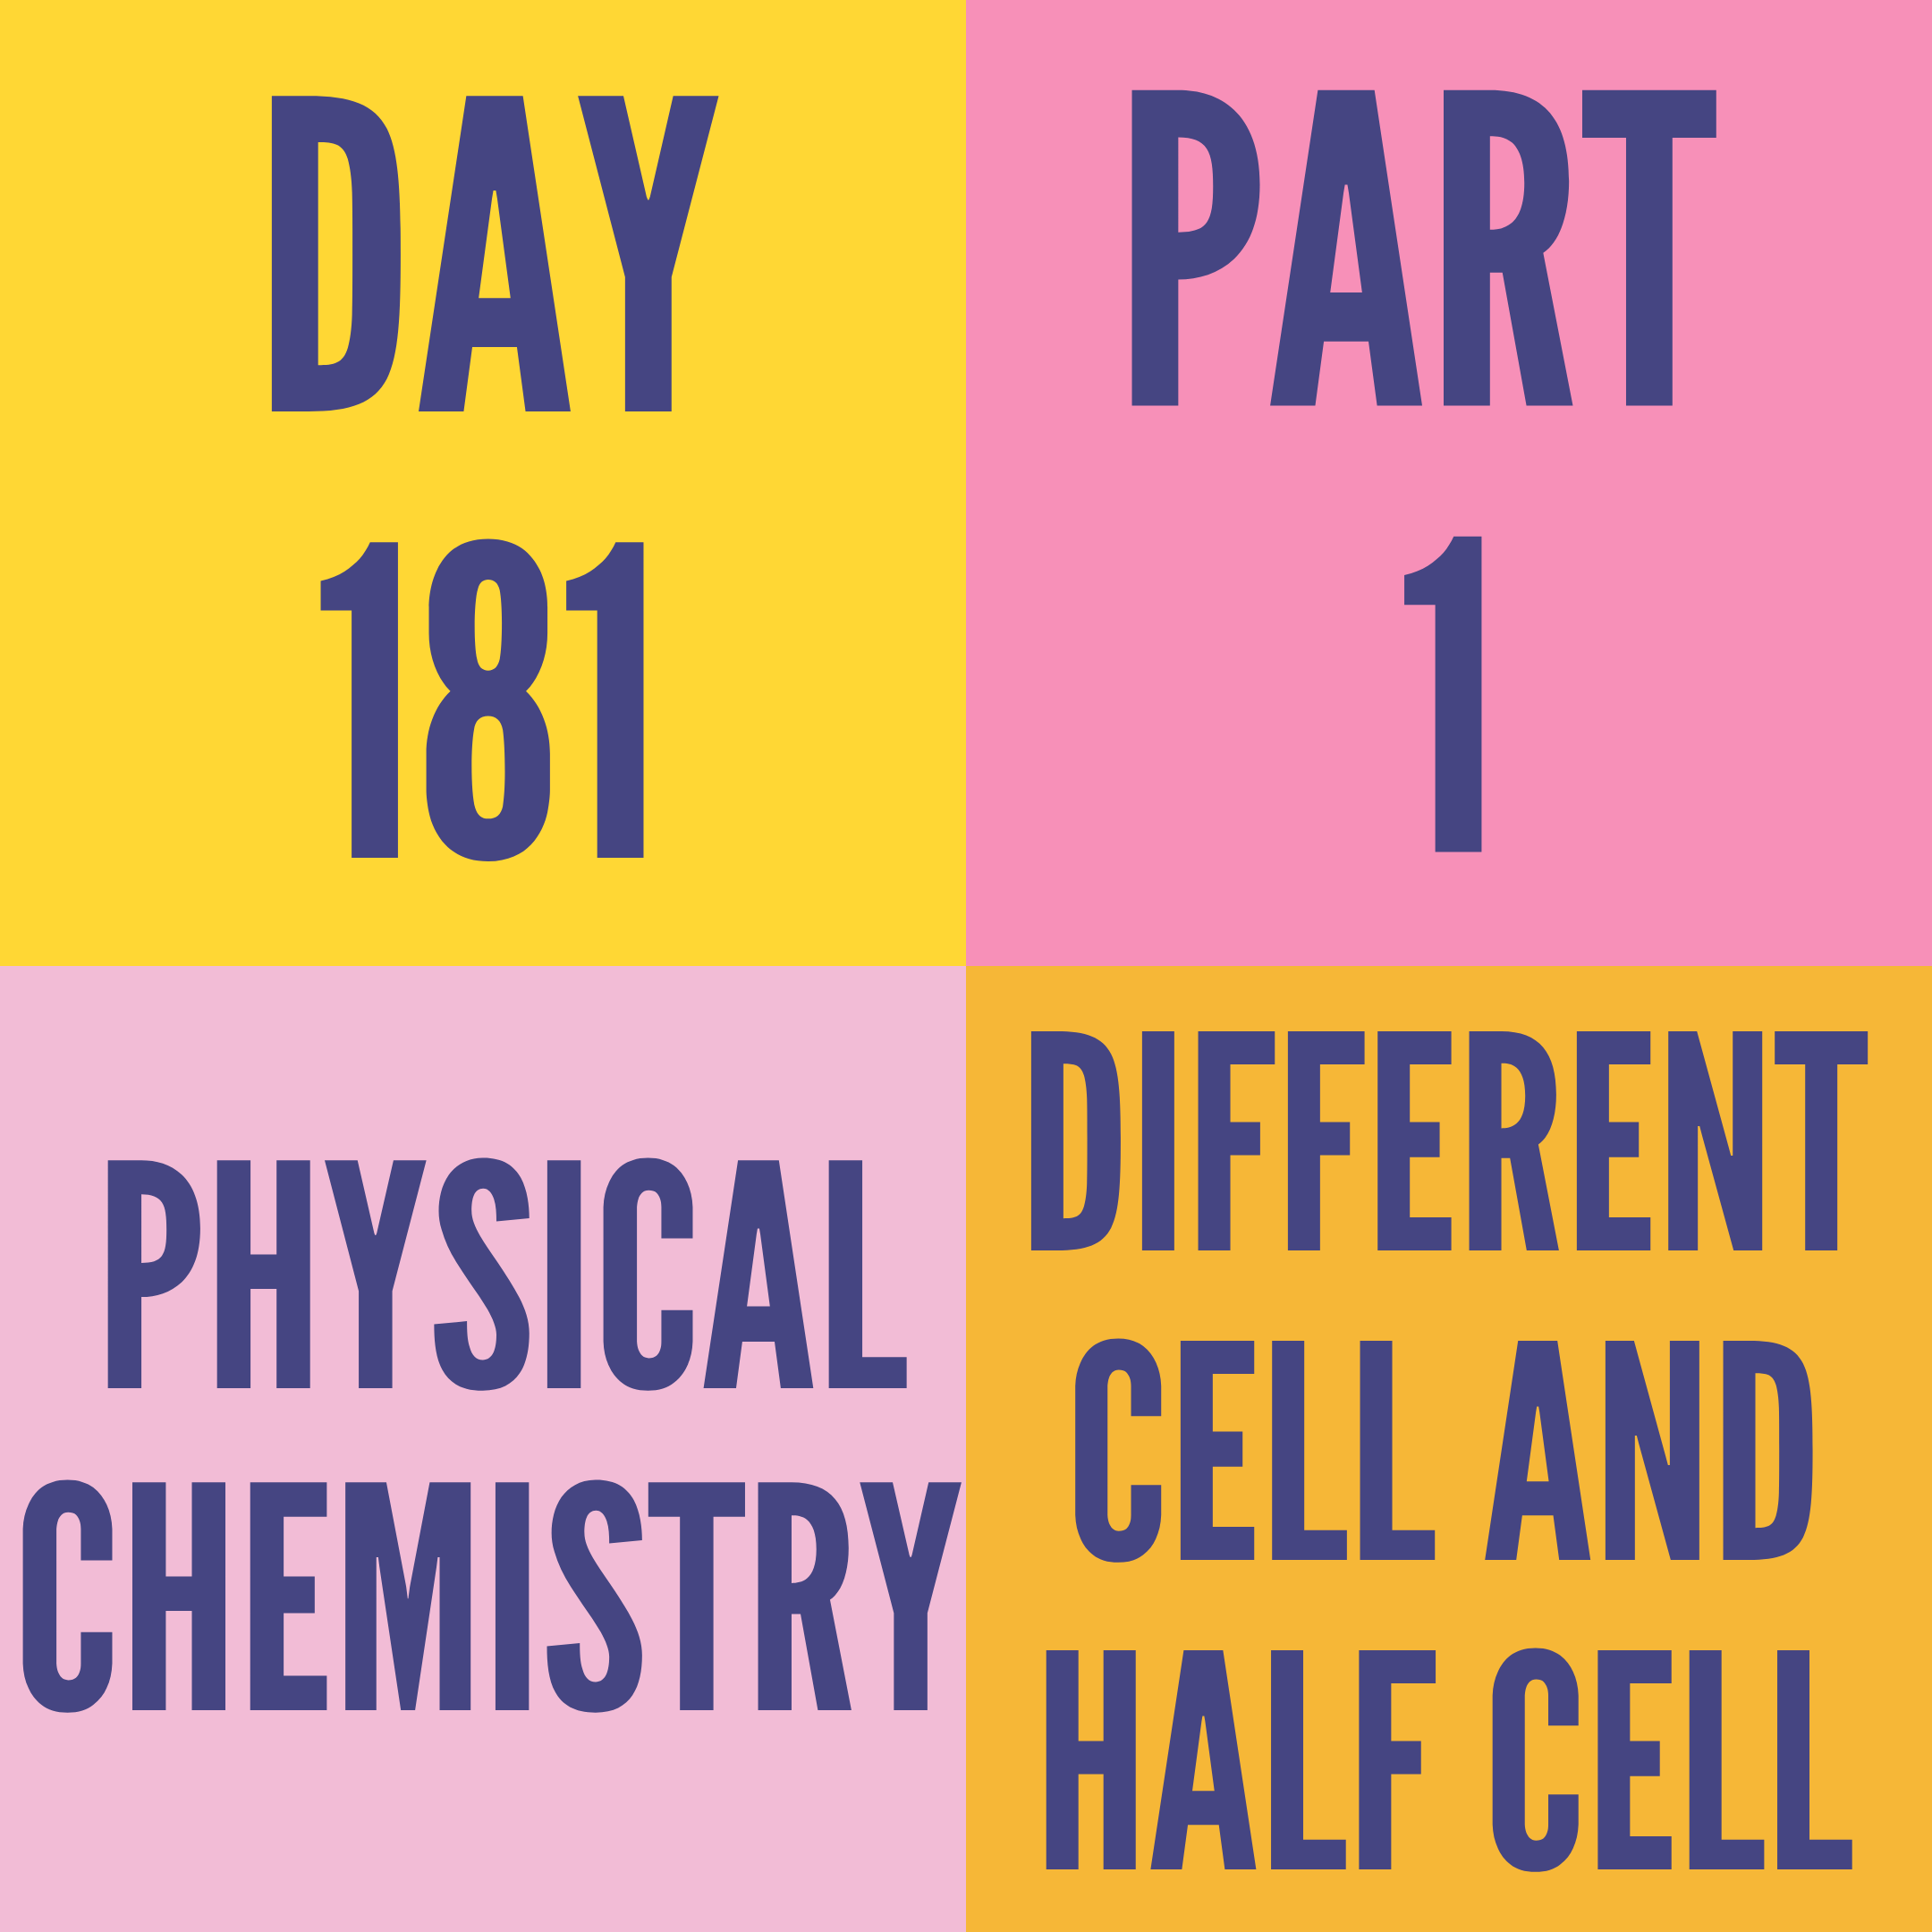 DAY-181 PART-1 DIFFERENT CELL AND HALF CELL